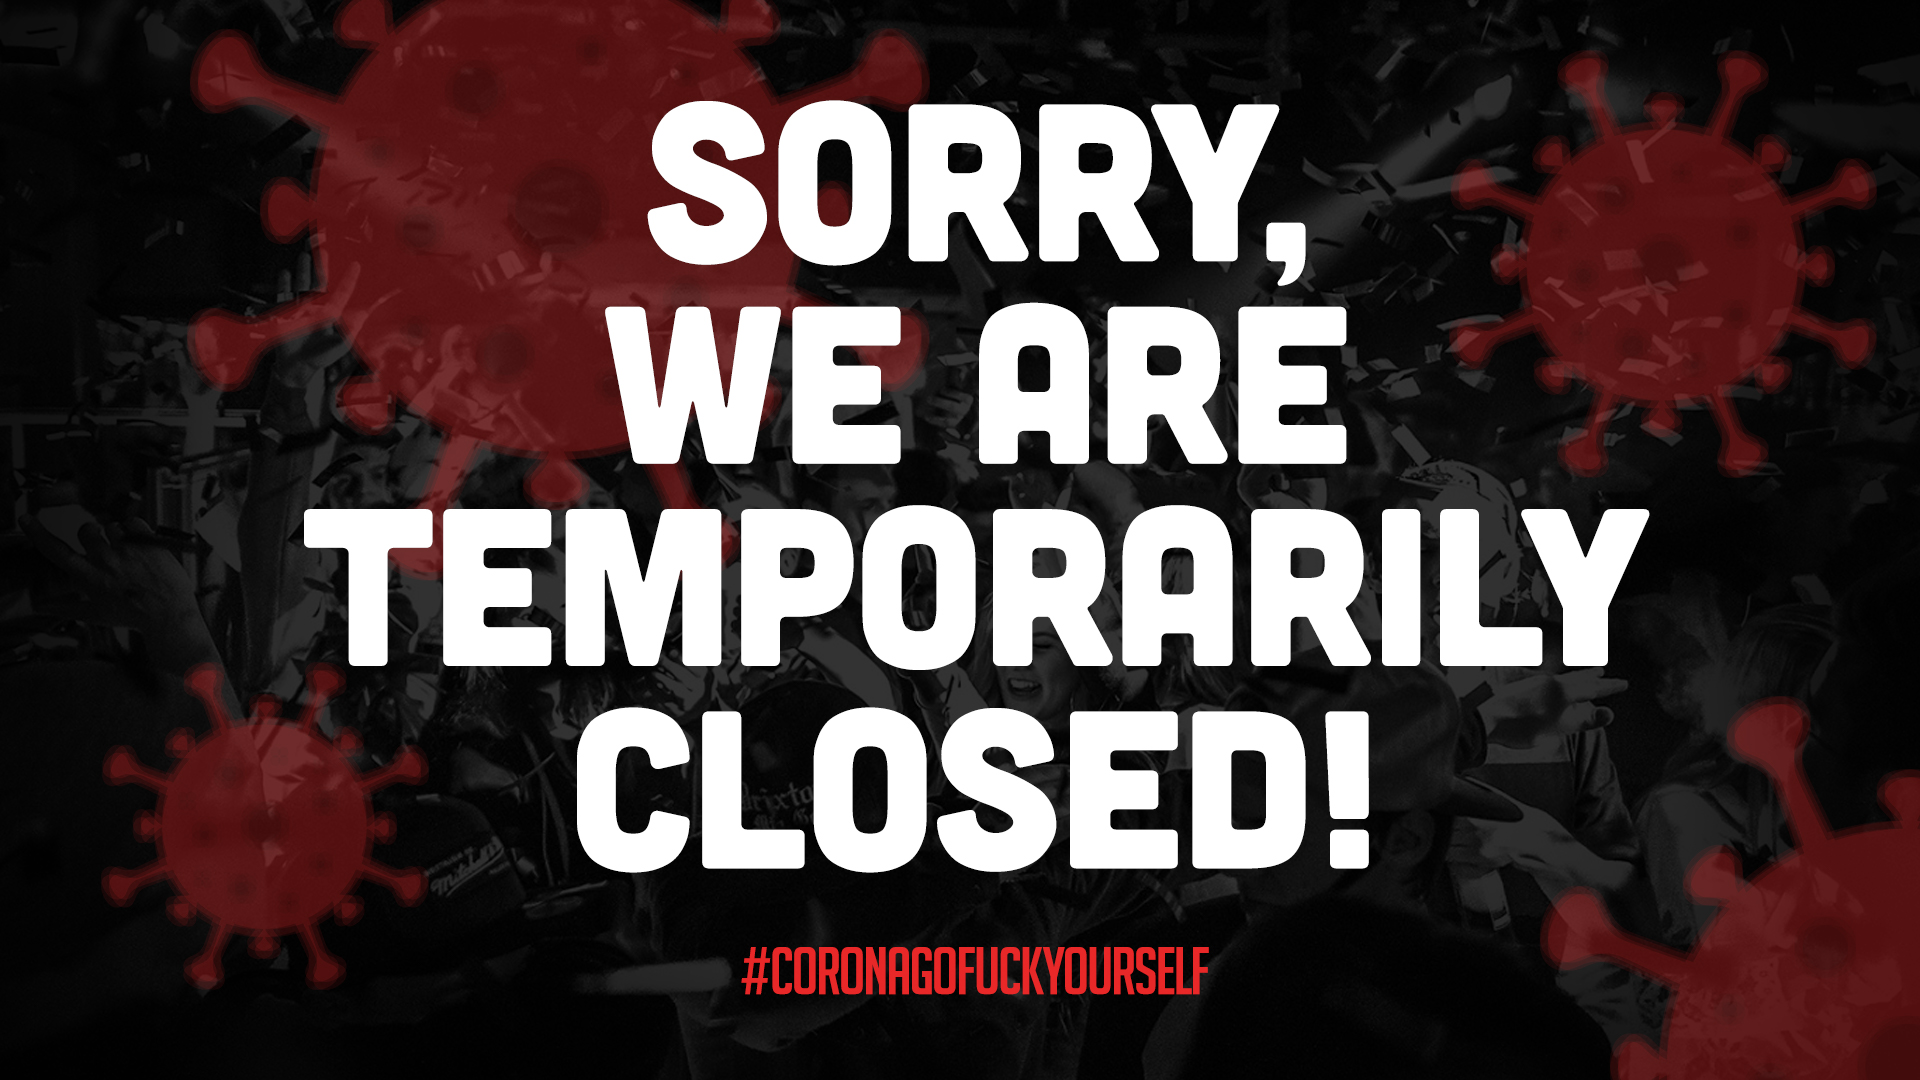 SORRY, WE ARE TEMPORARILY CLOSED!